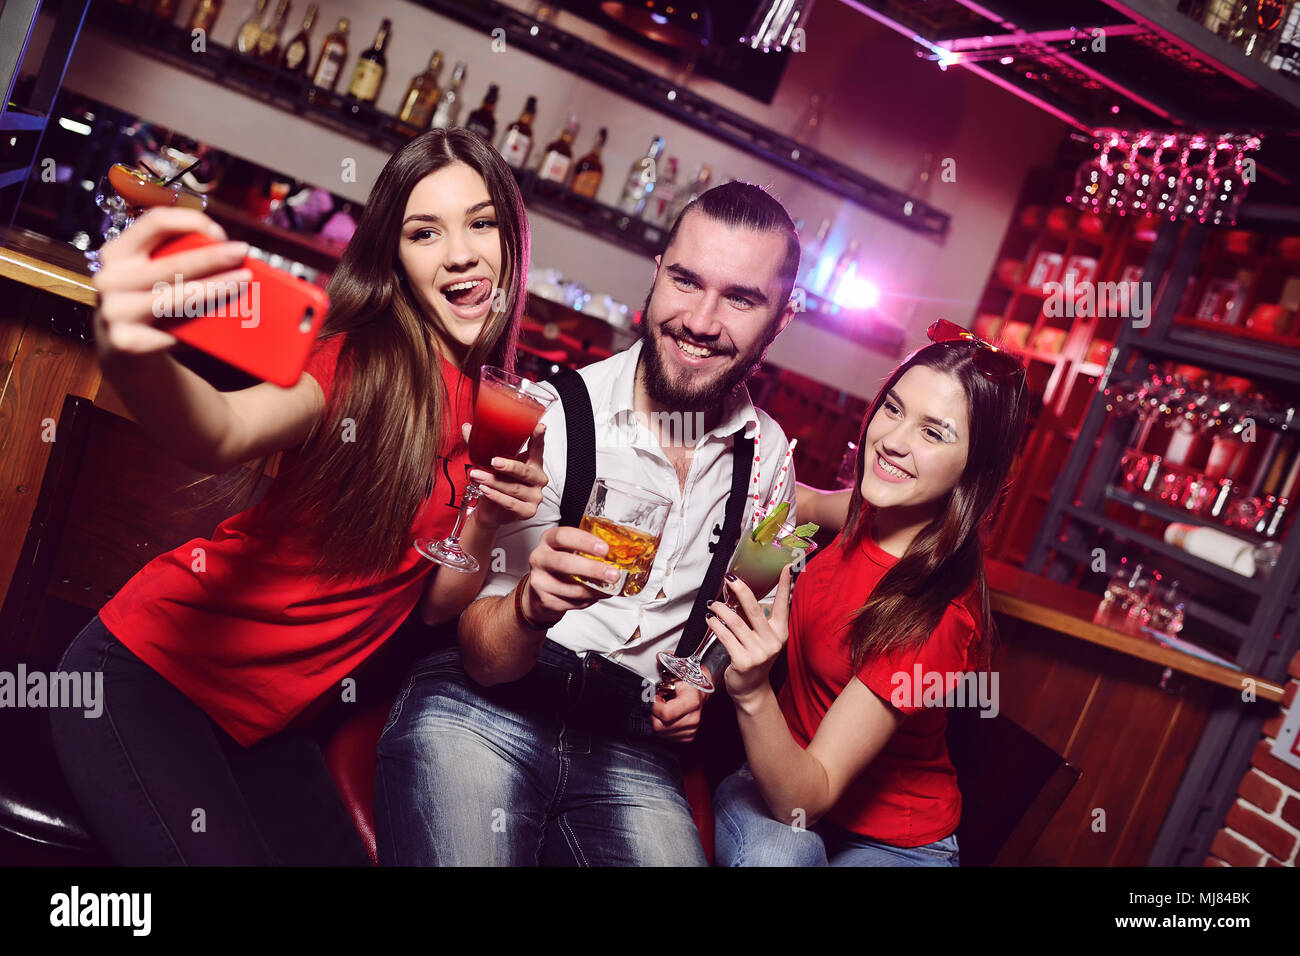 friends - two young attractive girls and a guy at a nightclub party make a photo of themselves on a mobile phone or smartphone - Stock Image